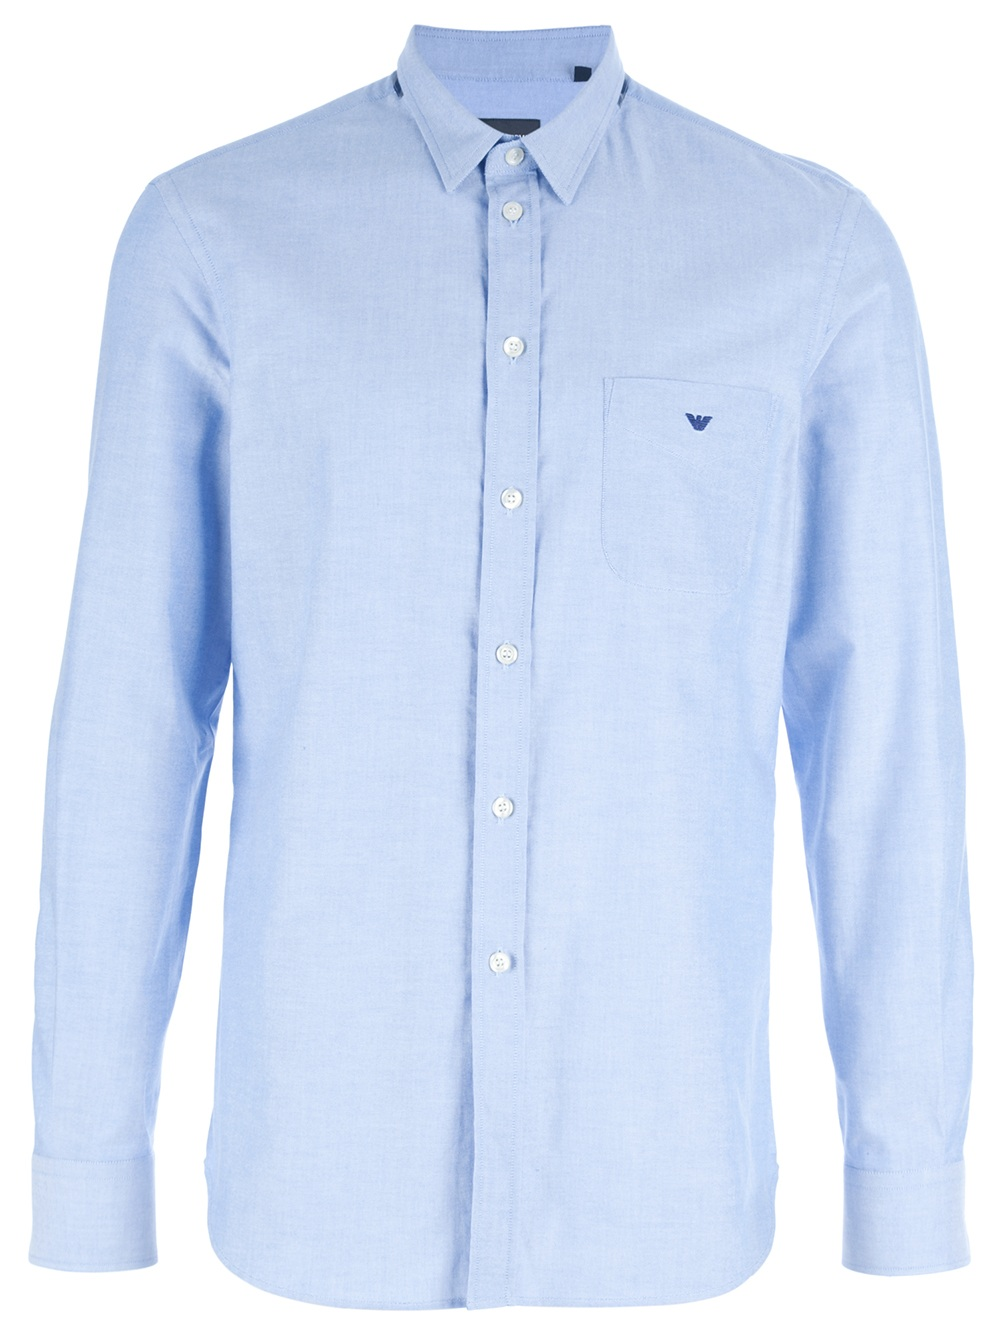 emporio armani logo shirt in blue for men lyst